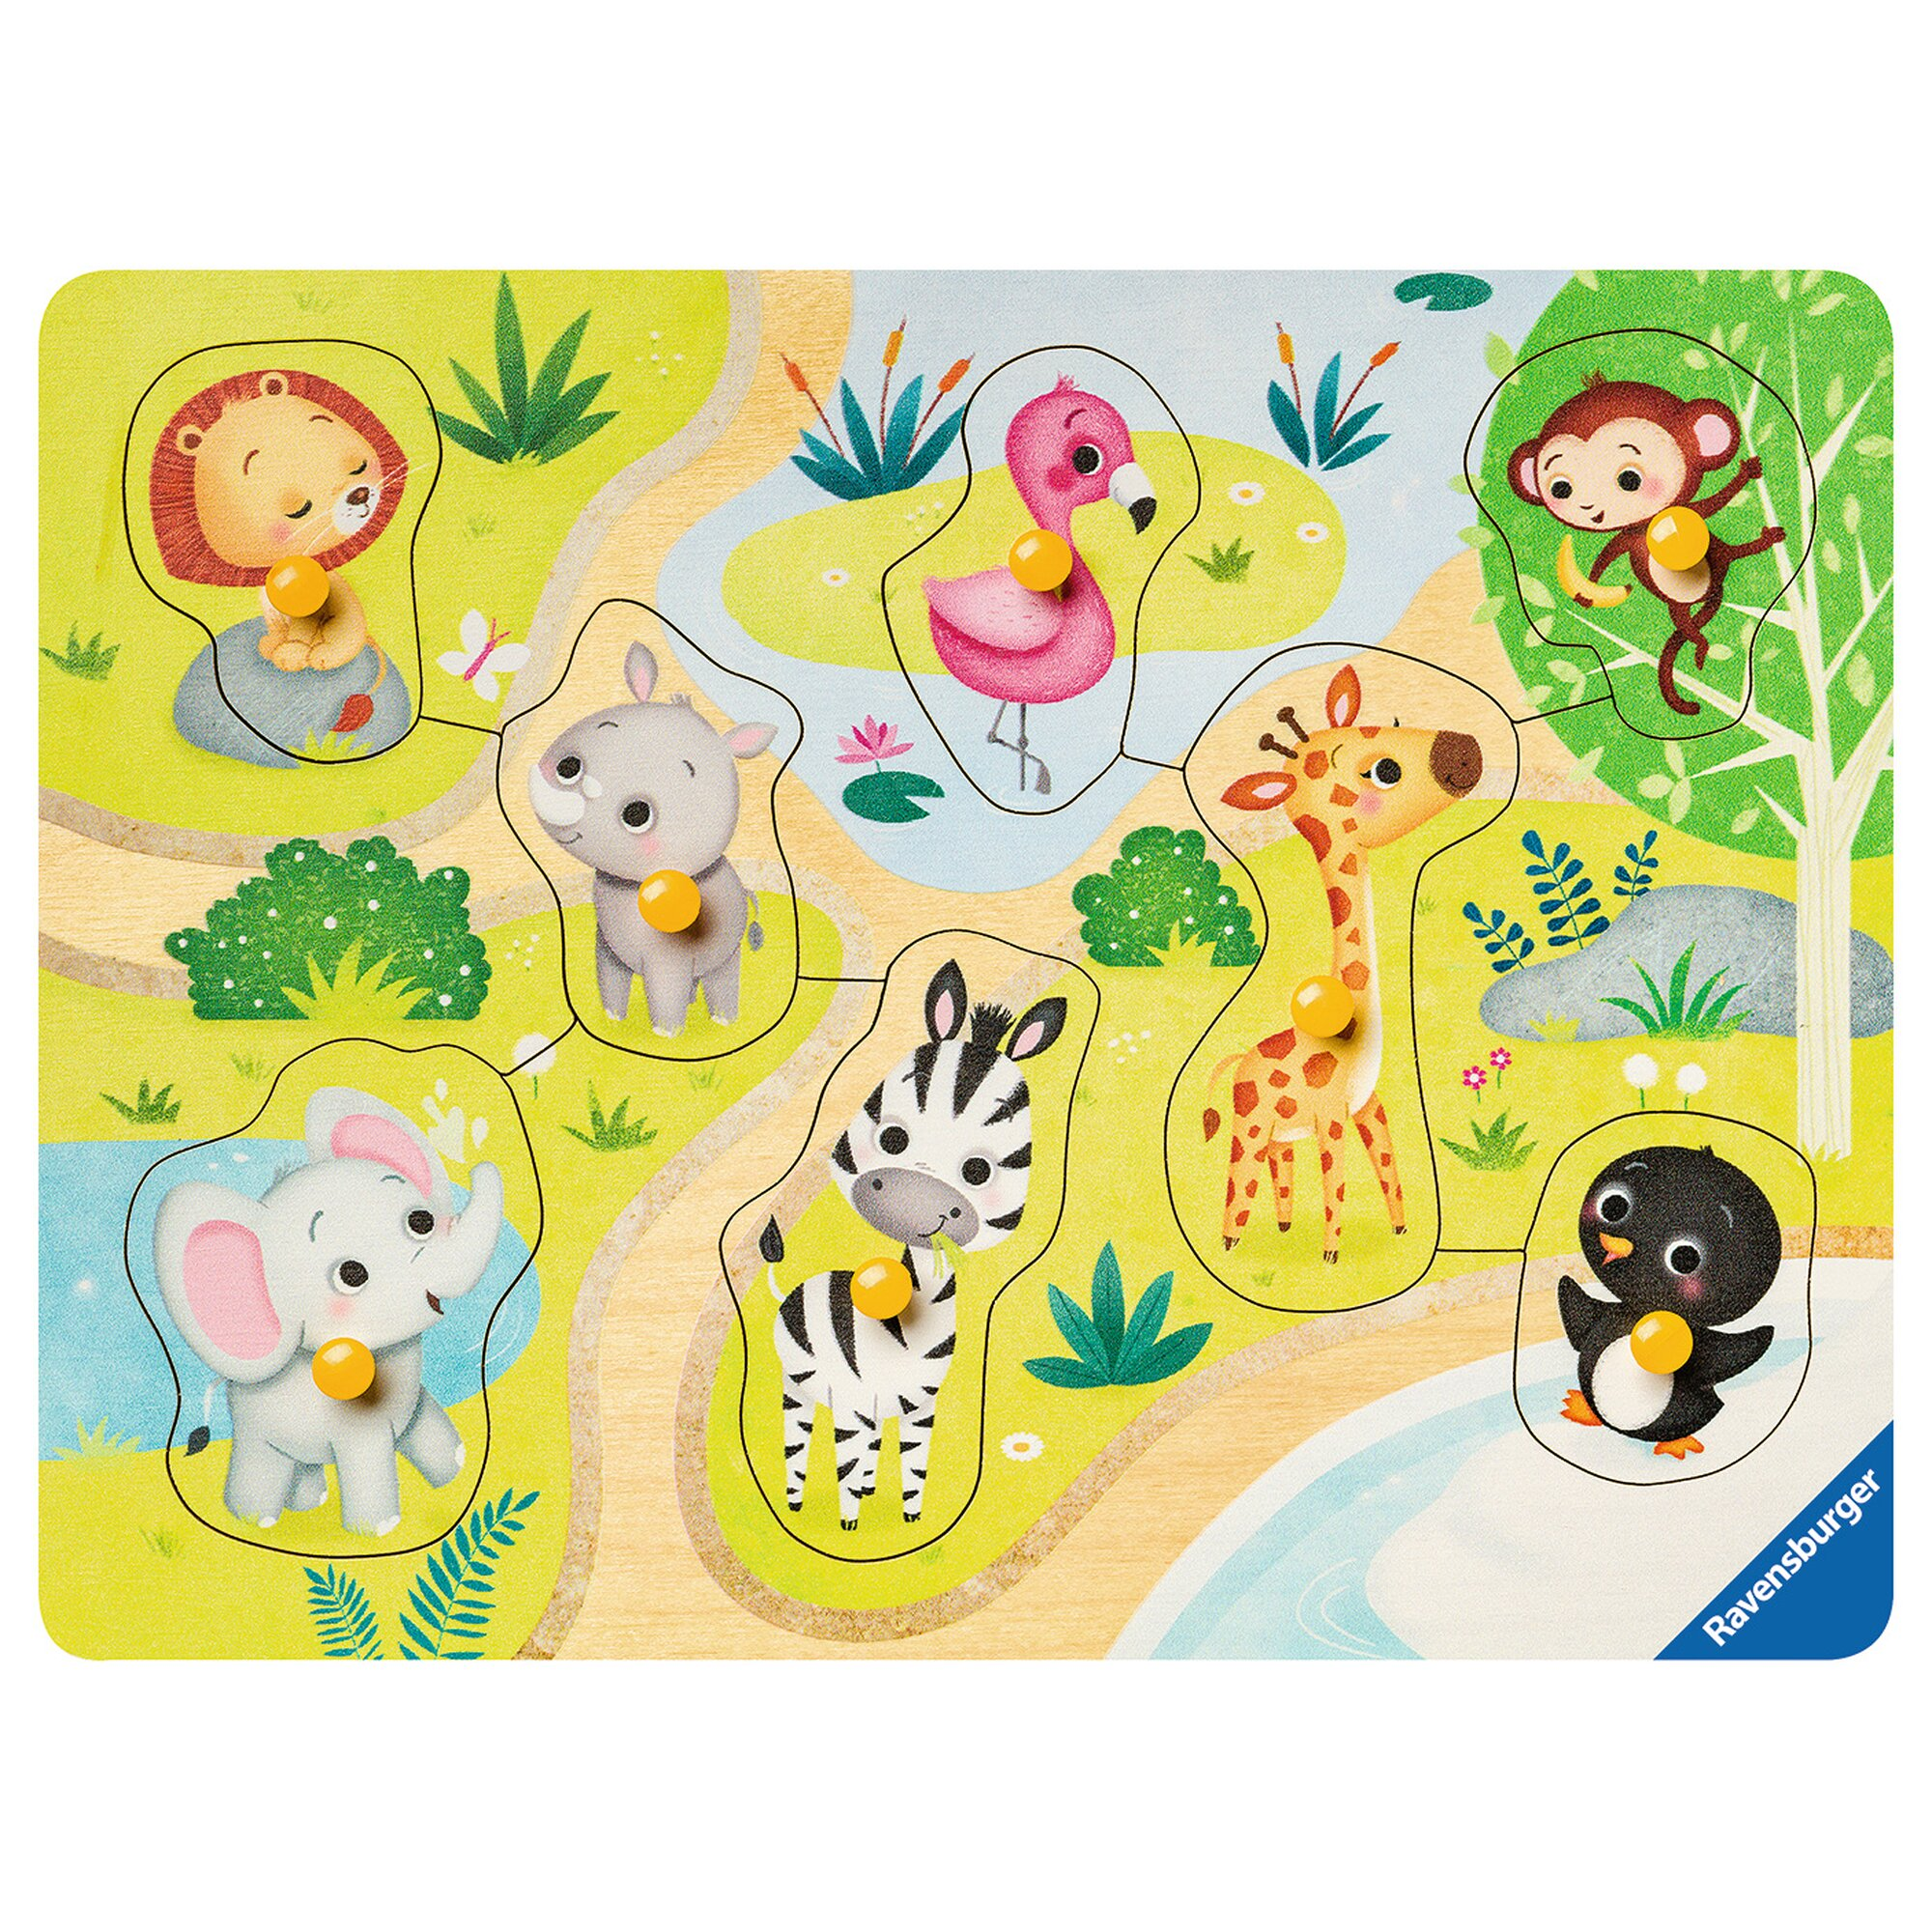 ravensburger-my-first-wooden-puzzles-8-teile-unterwegs-im-zoo, 9.99 EUR @ babywalz-de